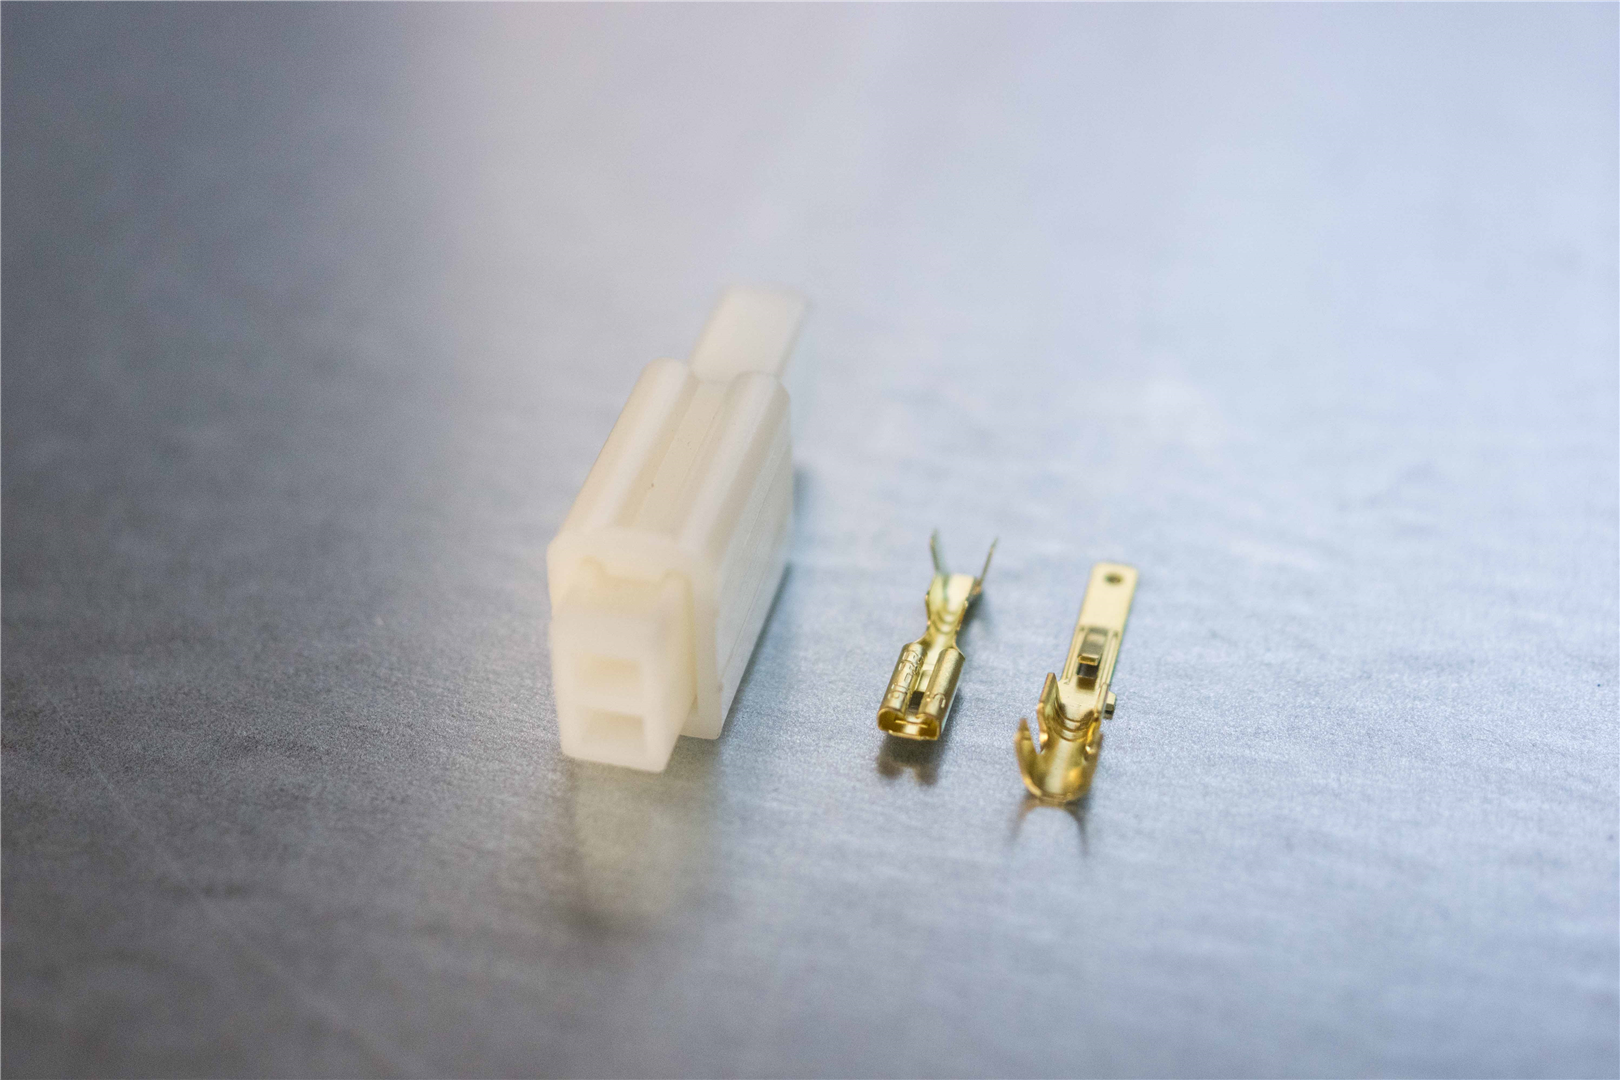 2.8mm 2-pin Non-Latching M/F ABS Connector